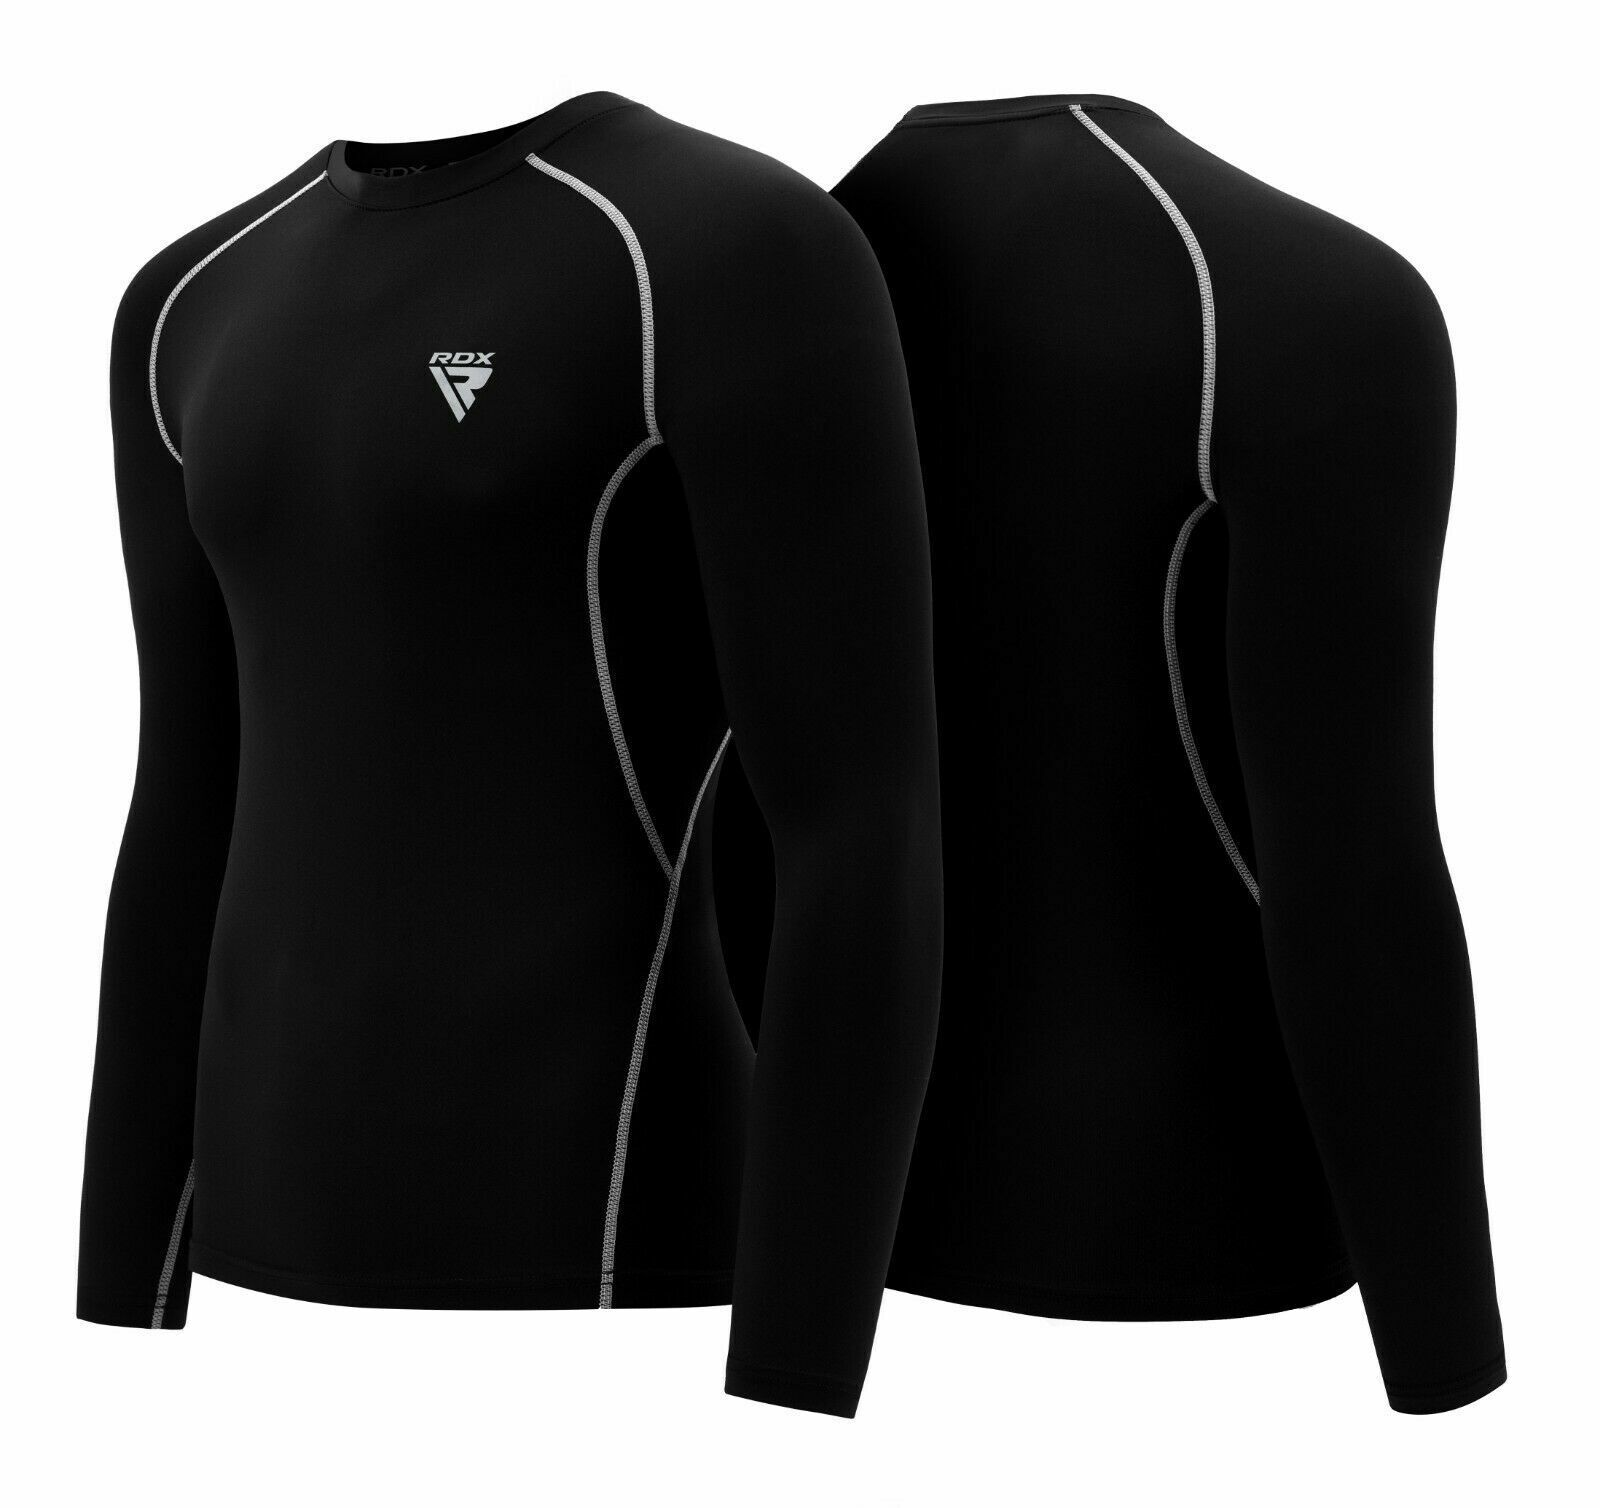 RDX Rash Guard Compression Base Layer MMA  Running Boxing Shirt Long Sleeve US  high quality & fast shipping